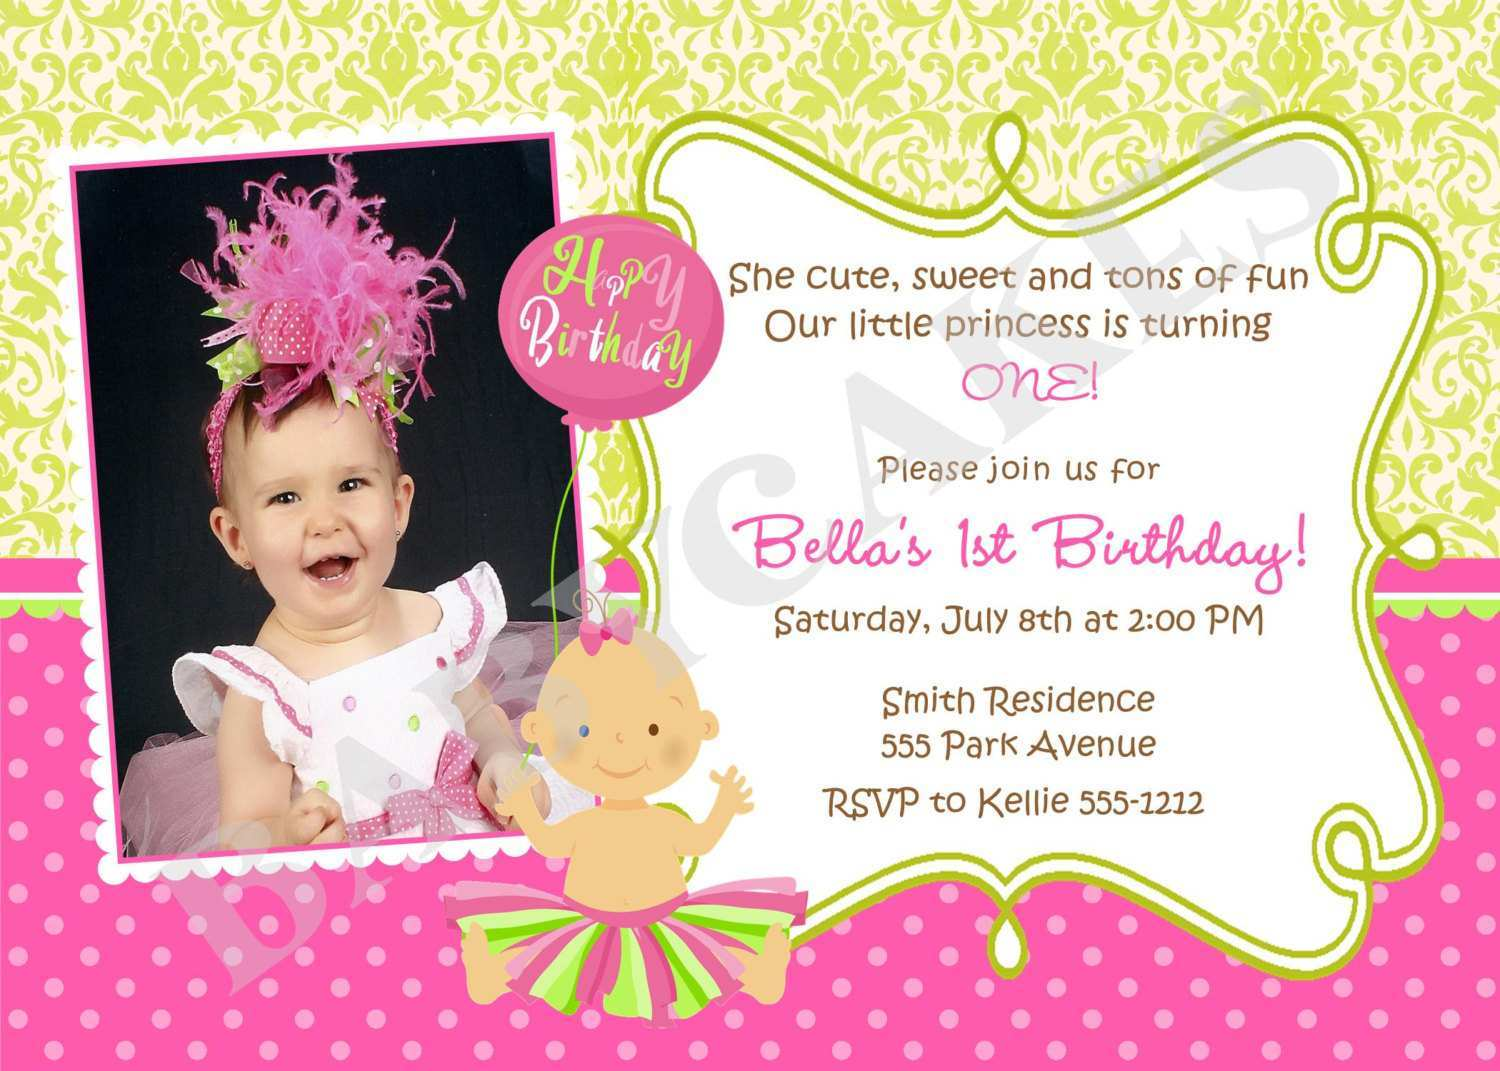 69 Adding Birthday Invitation Template For Baby Girl for Ms Word for Birthday Invitation Template For Baby Girl